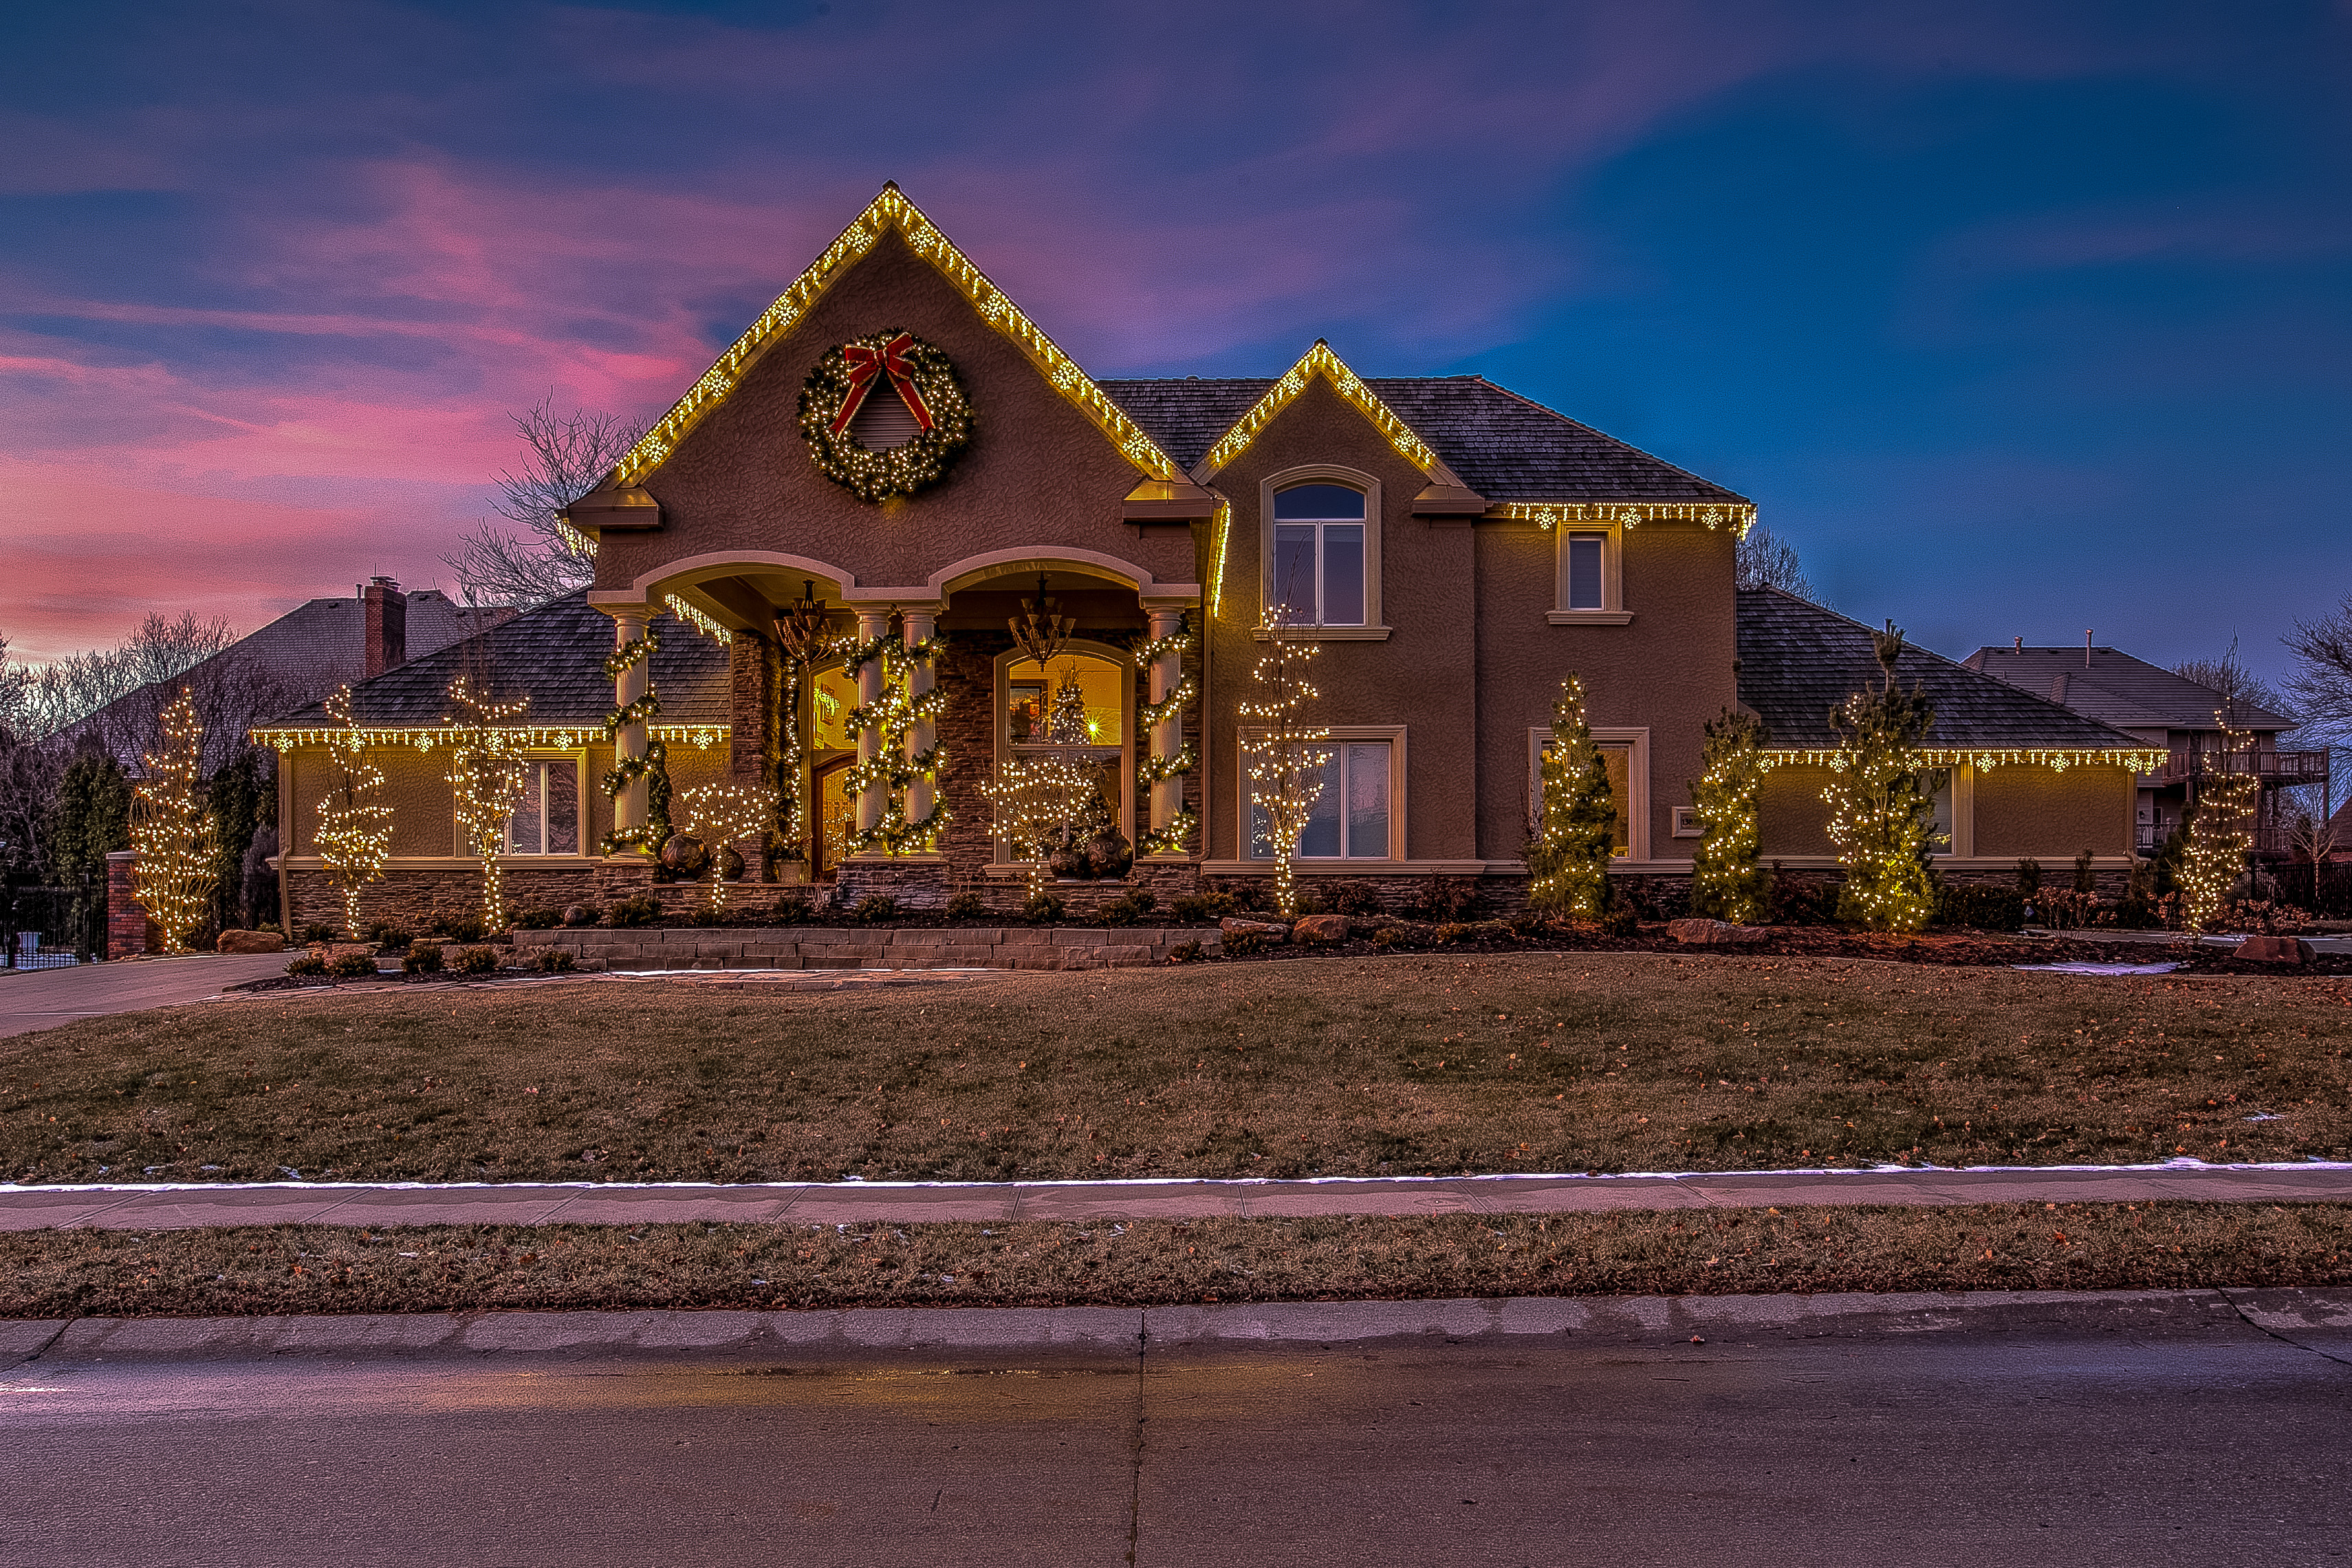 Residential Christmas Lighting Display